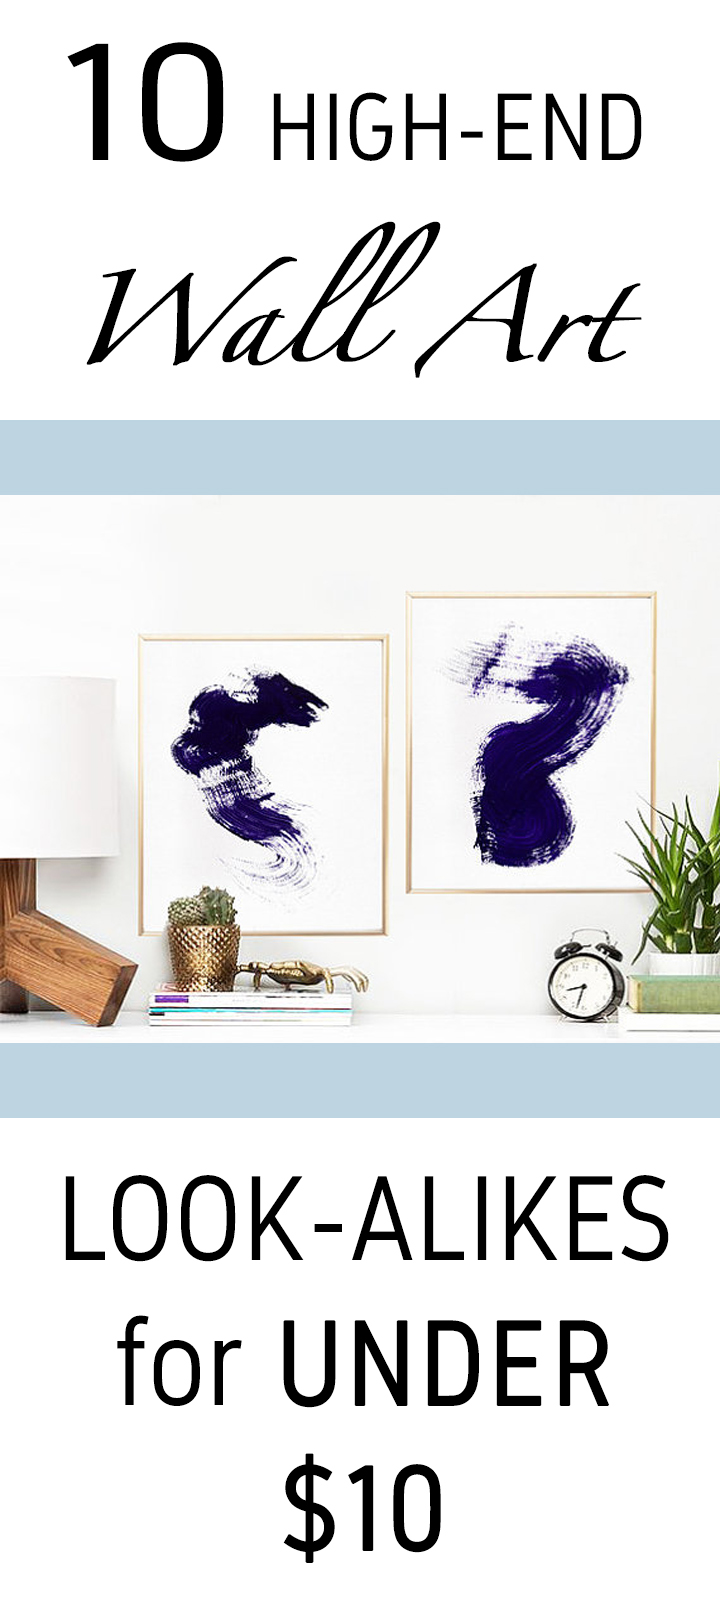 he Secret to Finding Inexpensive Stylish Artwork